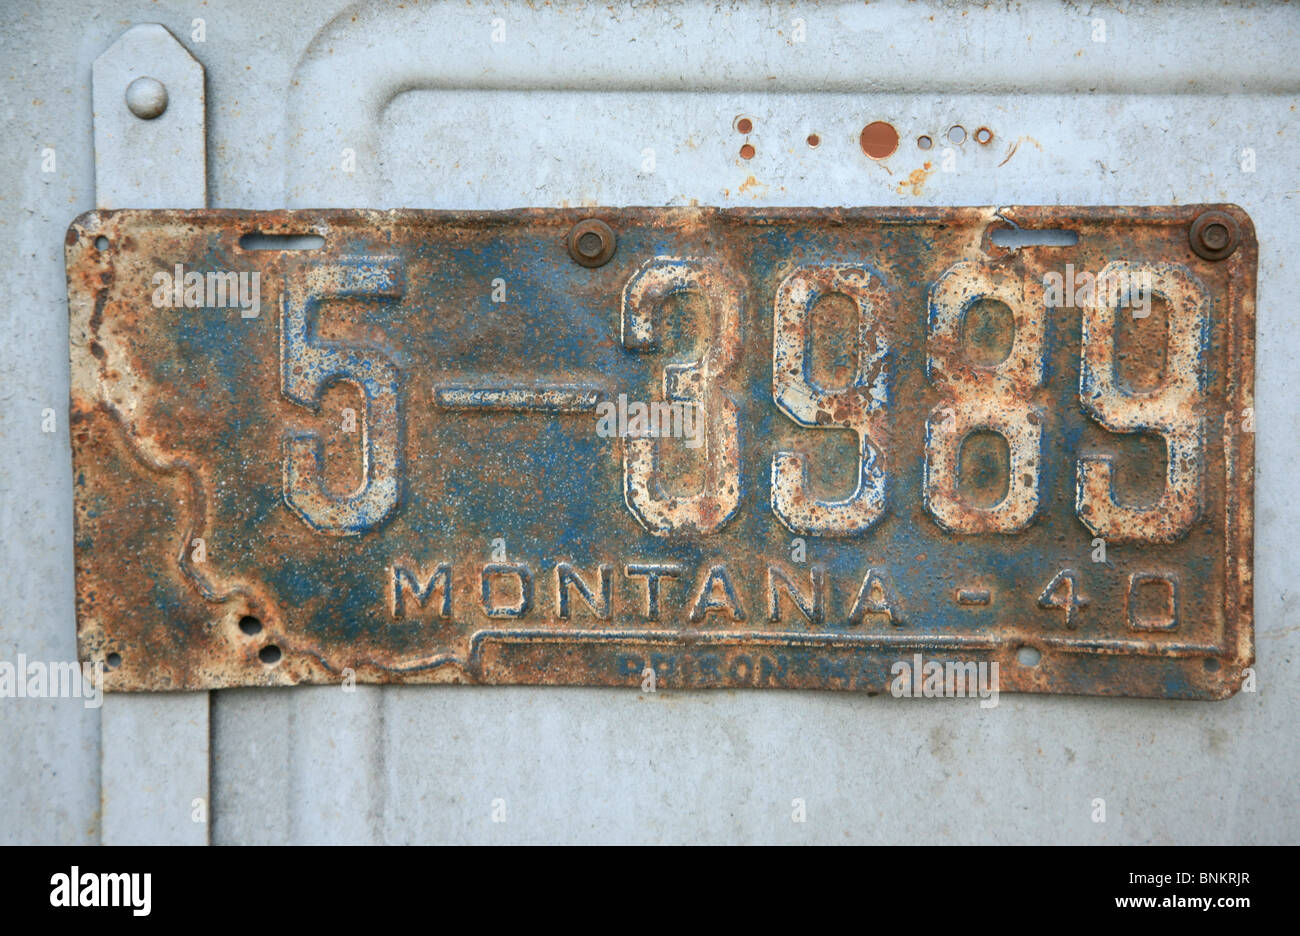 Pretty Old License Plate Pictures Inspiration - Classic Cars Ideas ...